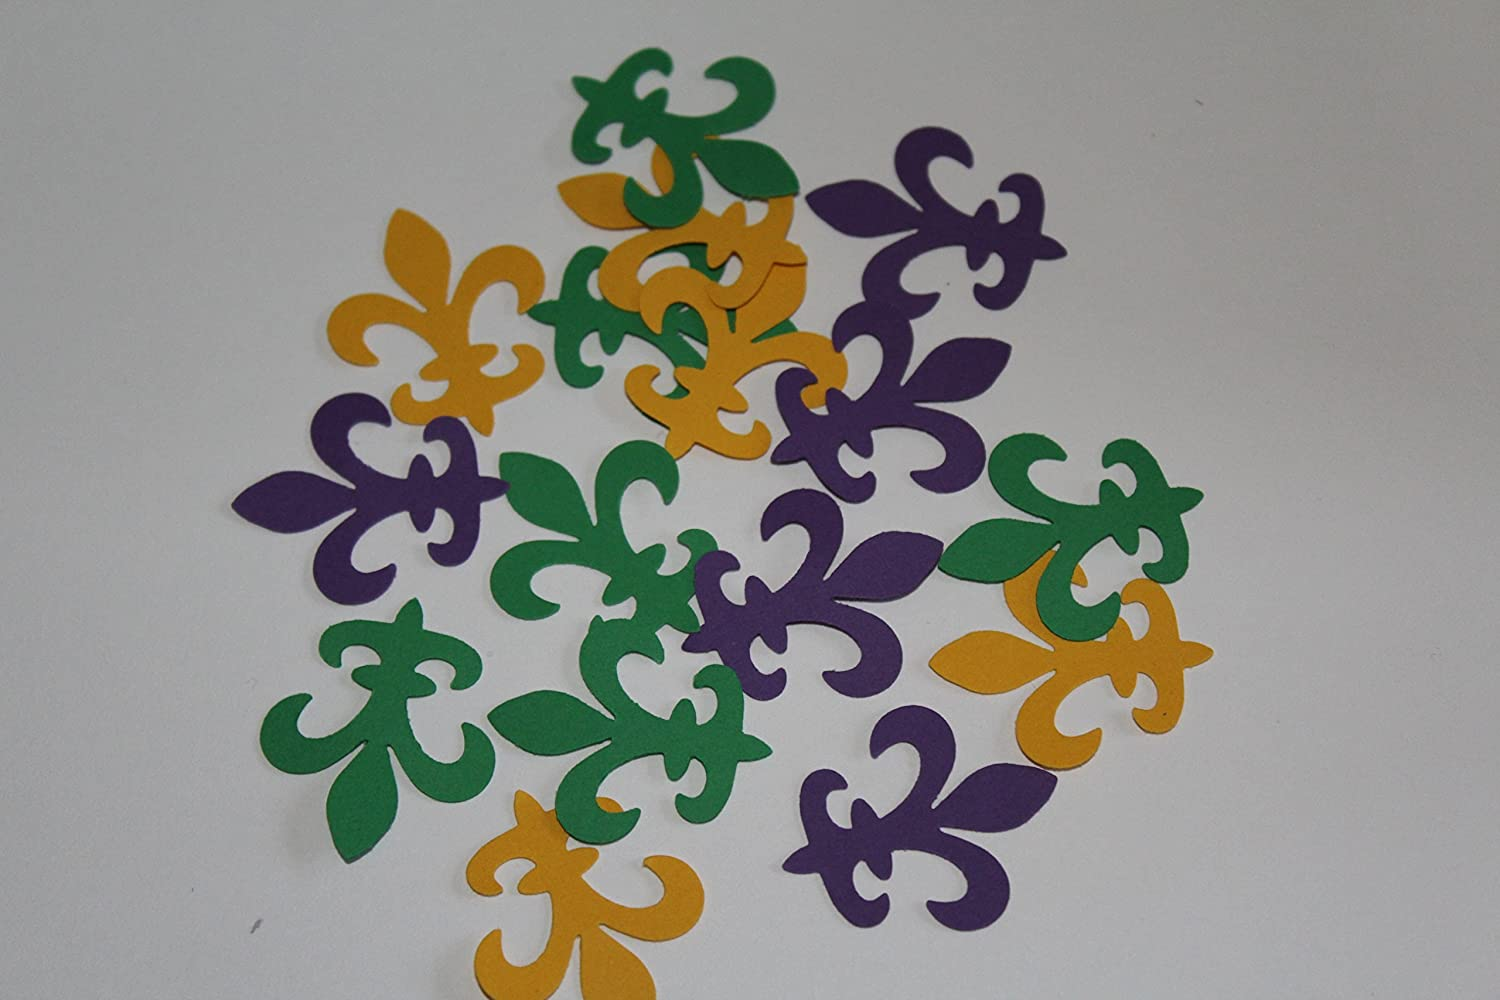 100 Fleur de lis mardi gras yellow, purple, green die cuts, confetti,party supplies, table decorations 818vvBksIpL